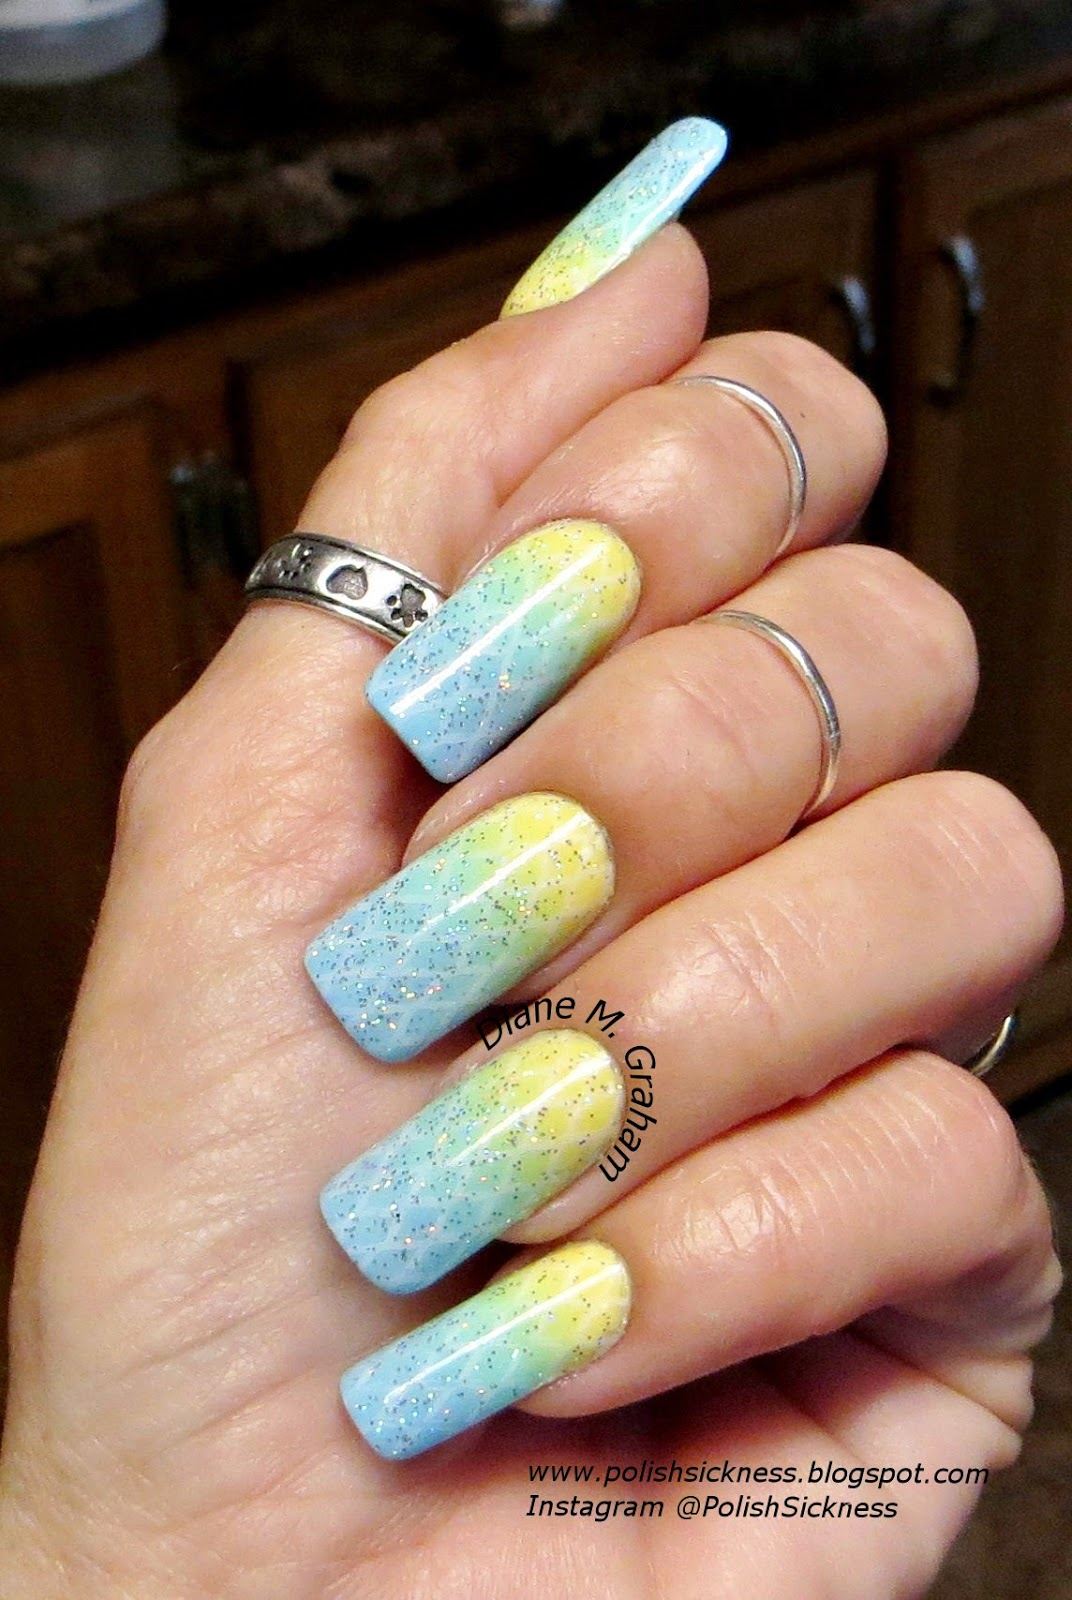 Fresh Paint Alex's Lemonade, Color Club Blue Ming, QRS Cruiser gradient, Orly Shine on Crazy Diamond, Bundle Monster BM XL02 stamp